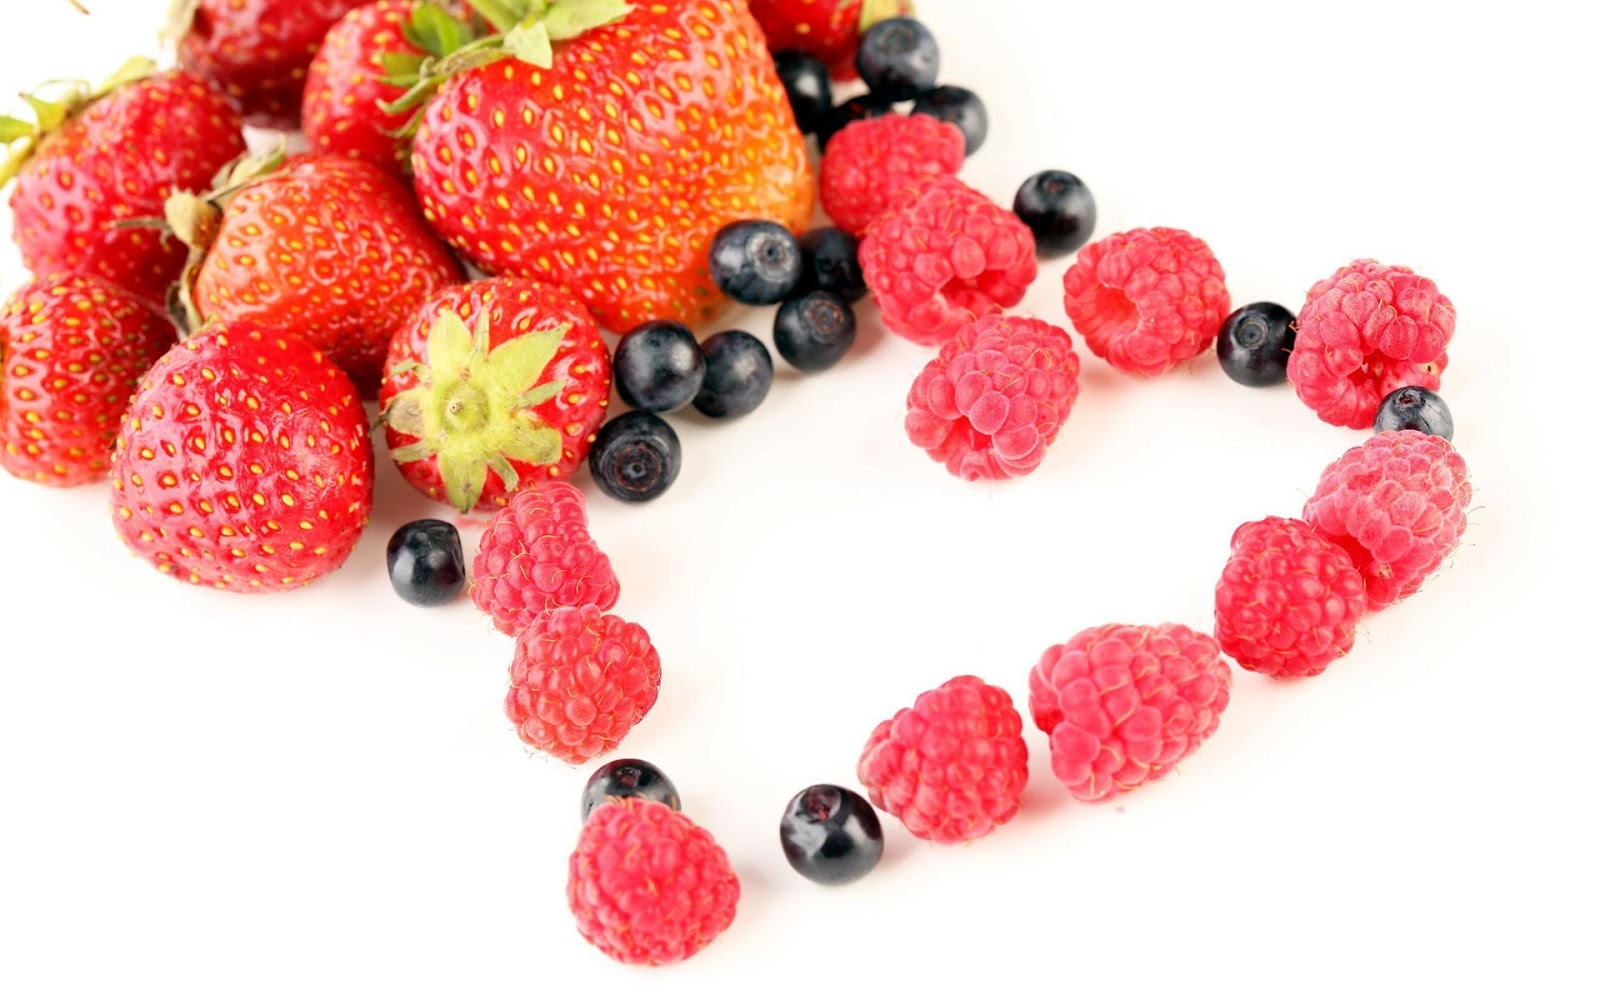 Hearts of Fruits